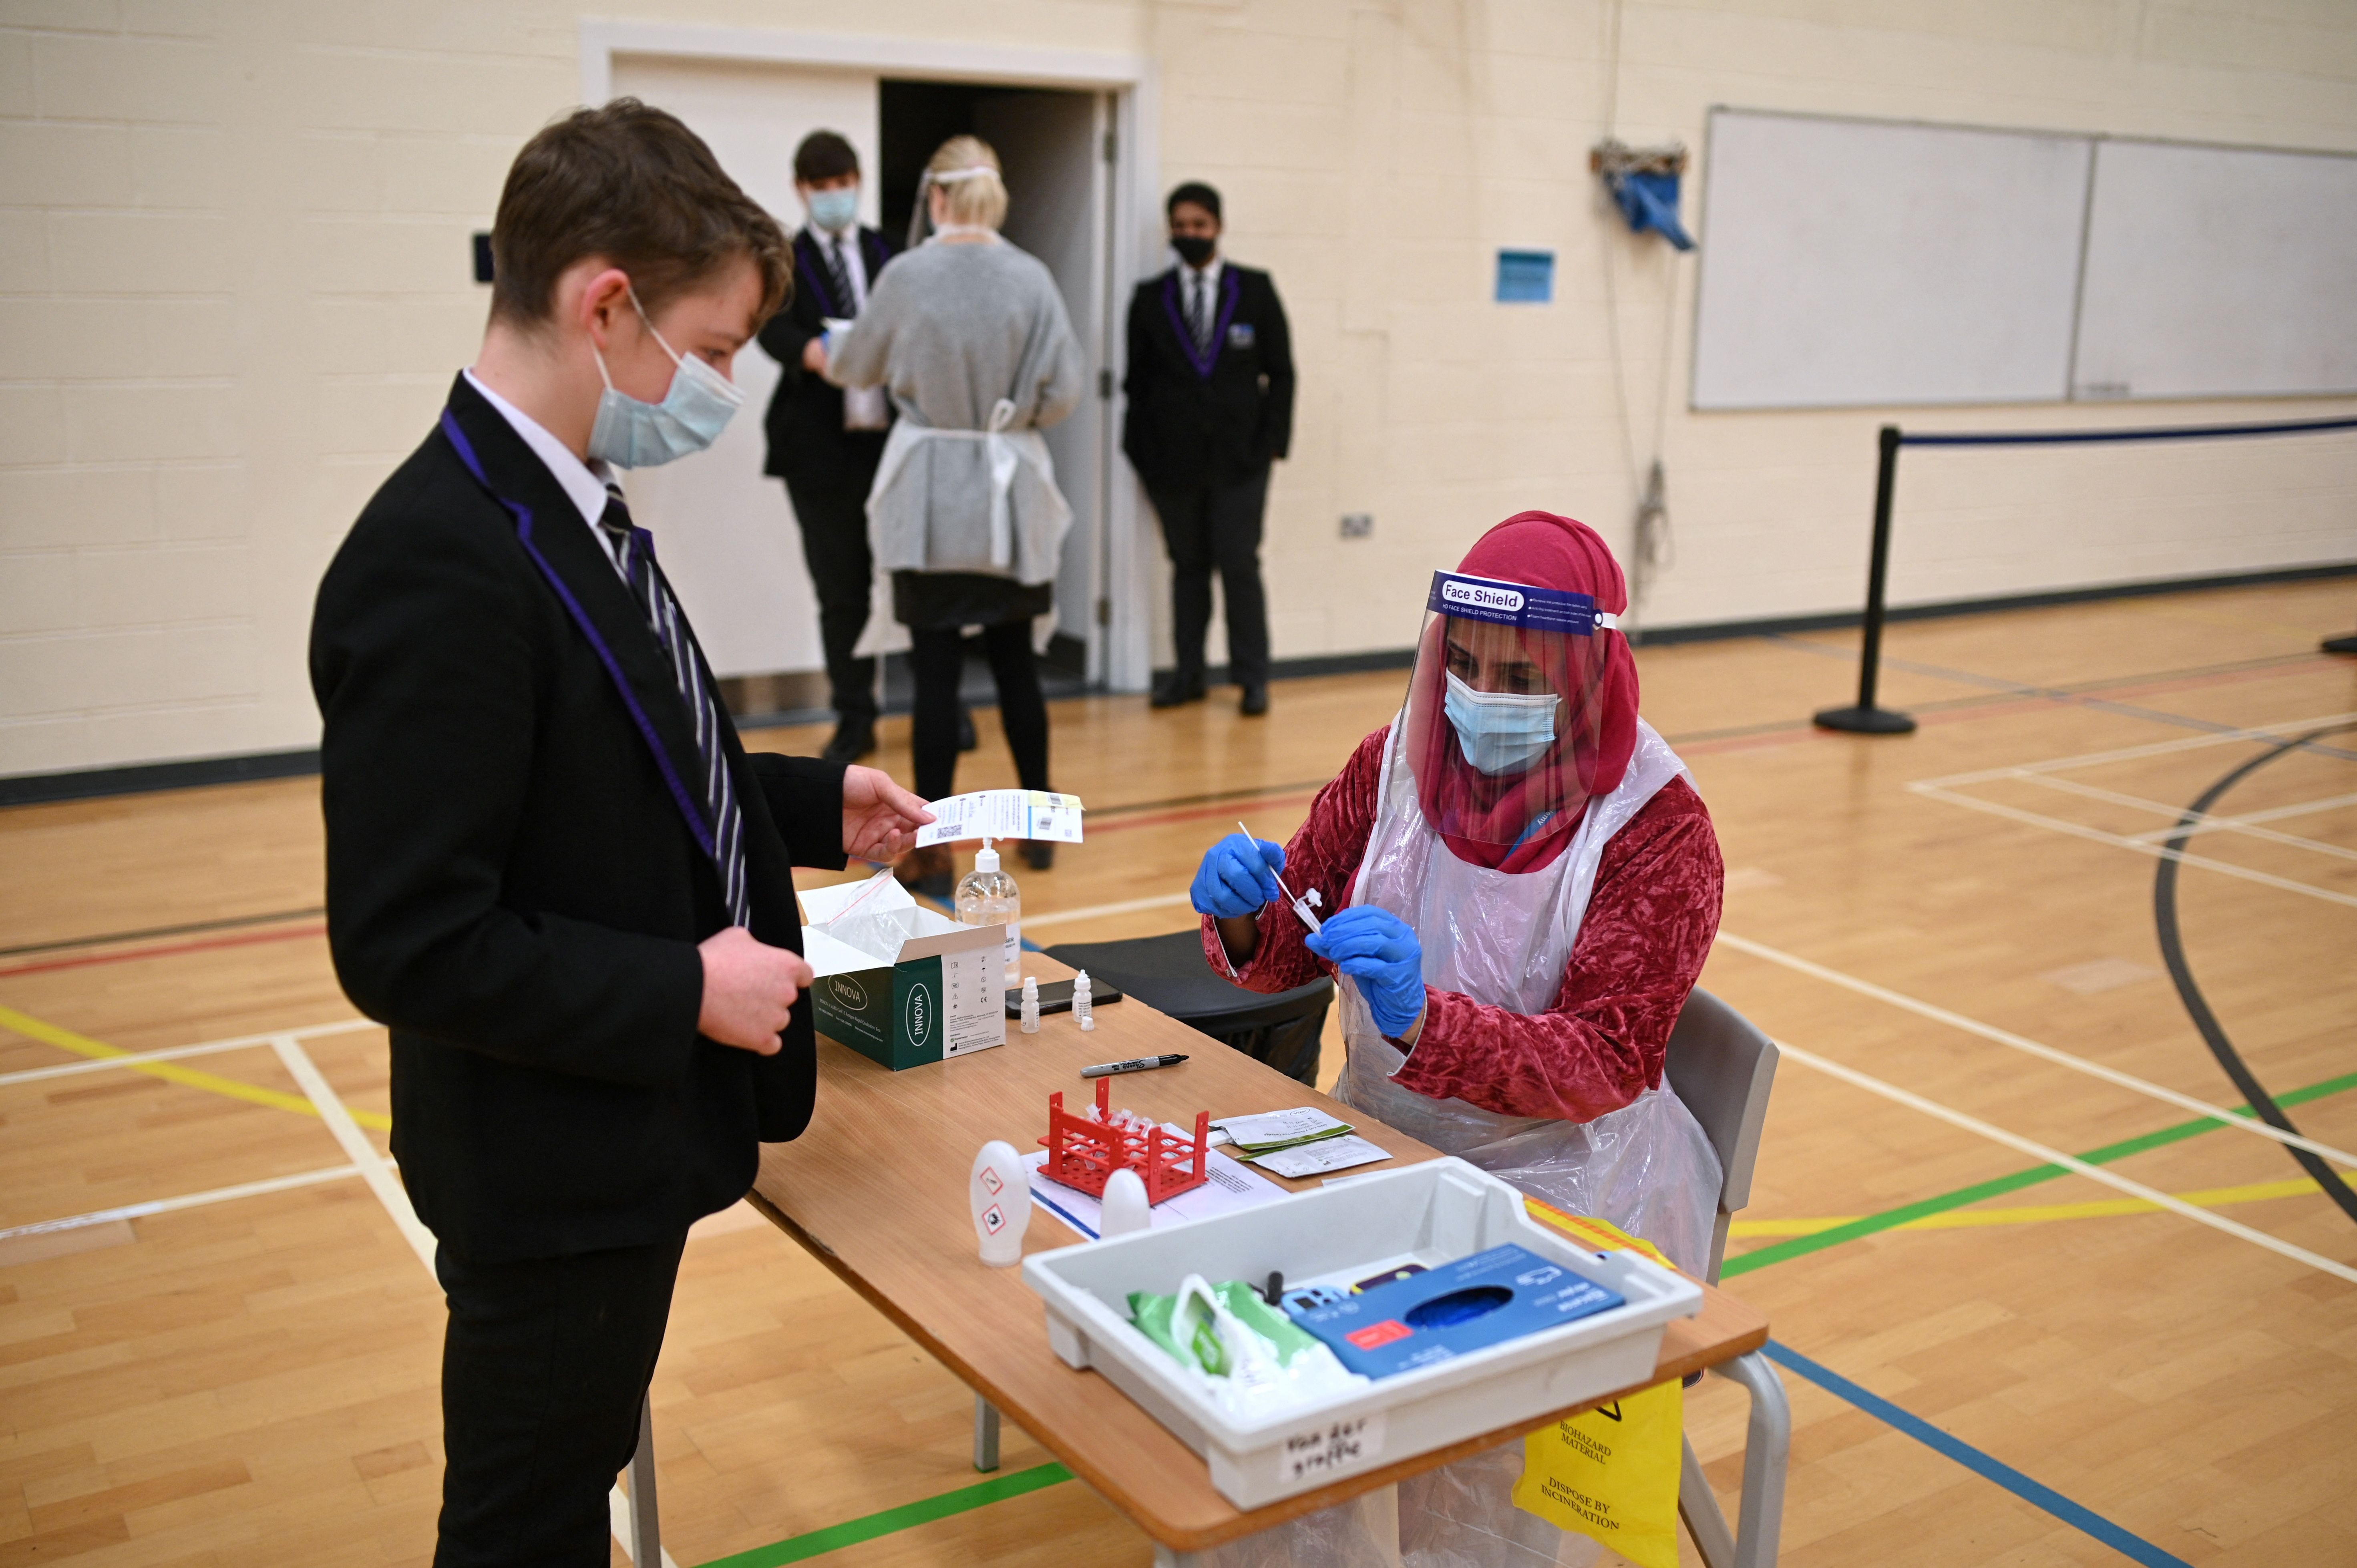 <p>Year 10 students hand over completed lateral flow Covid-19 tests to staff in the Sports Hall at Park Lane Academy in Halifax, northwest England on March 17, 2021. (Photo by Oli SCARFF / AFP) (Photo by OLI SCARFF/AFP via Getty Images)</p>